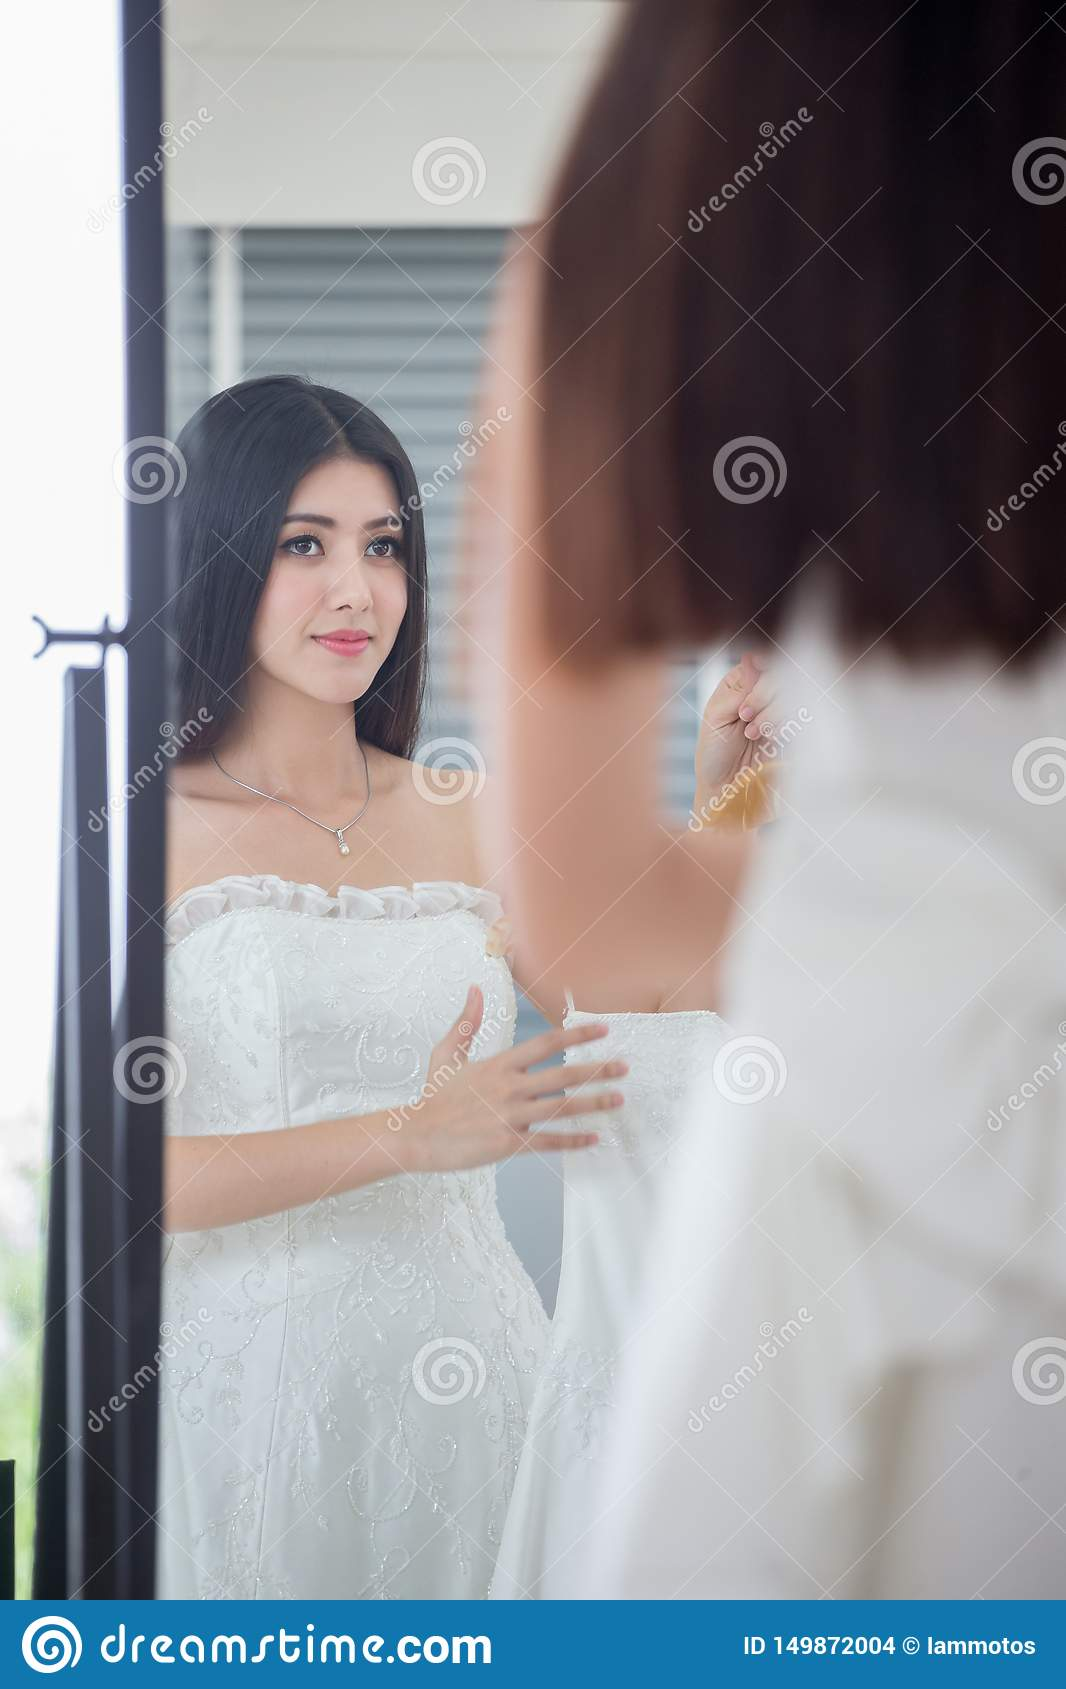 Beauty portrait of young asian bride is looking into the mirror and smiling while choosing wedding dress in wedding salon of